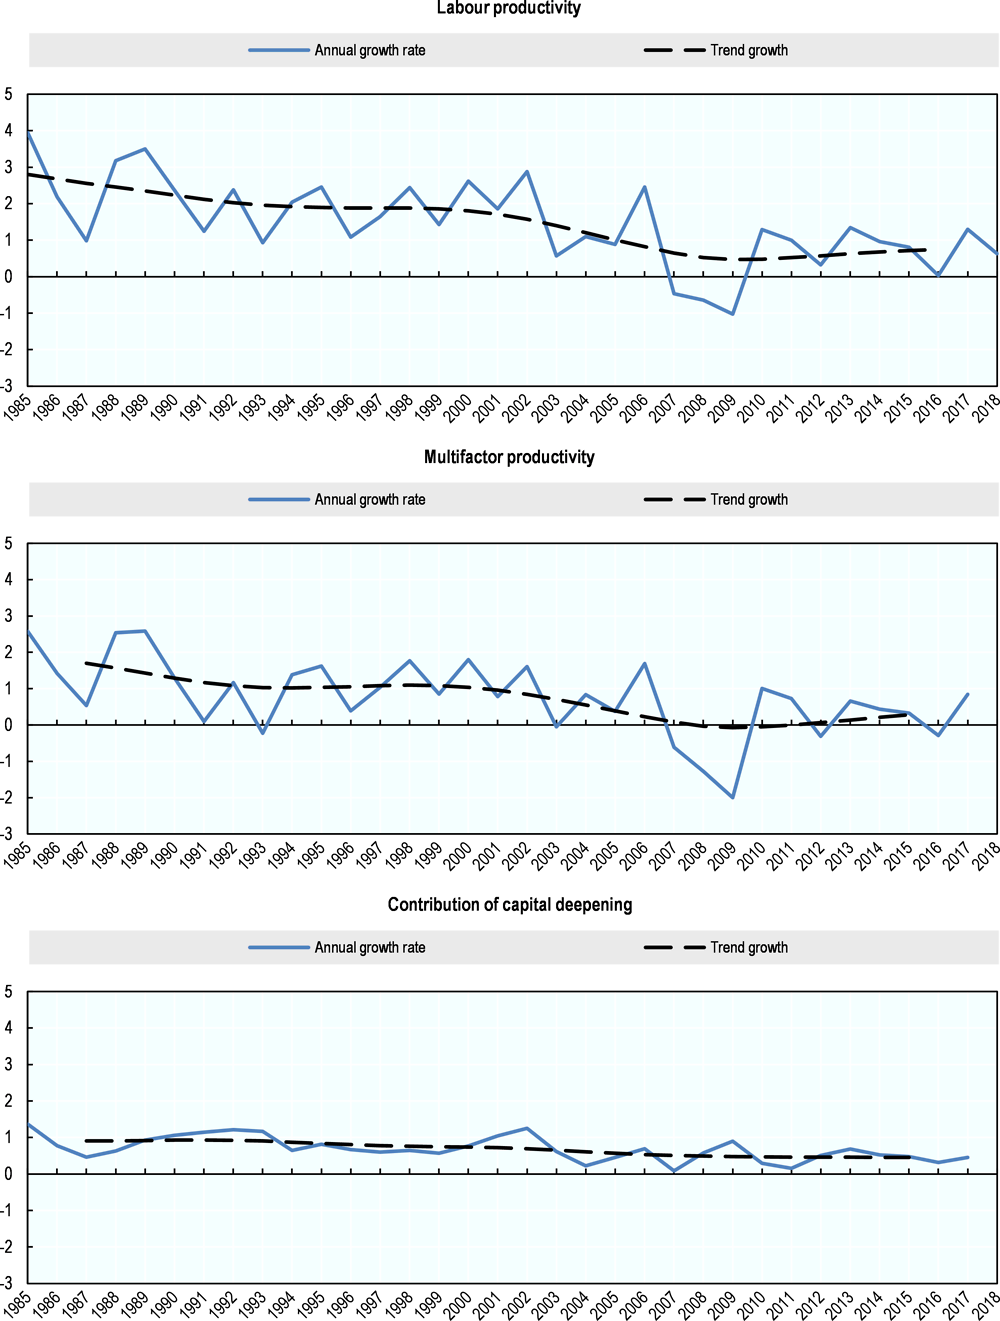 Figure 7.3. Labour productivity growth trend and its components, France